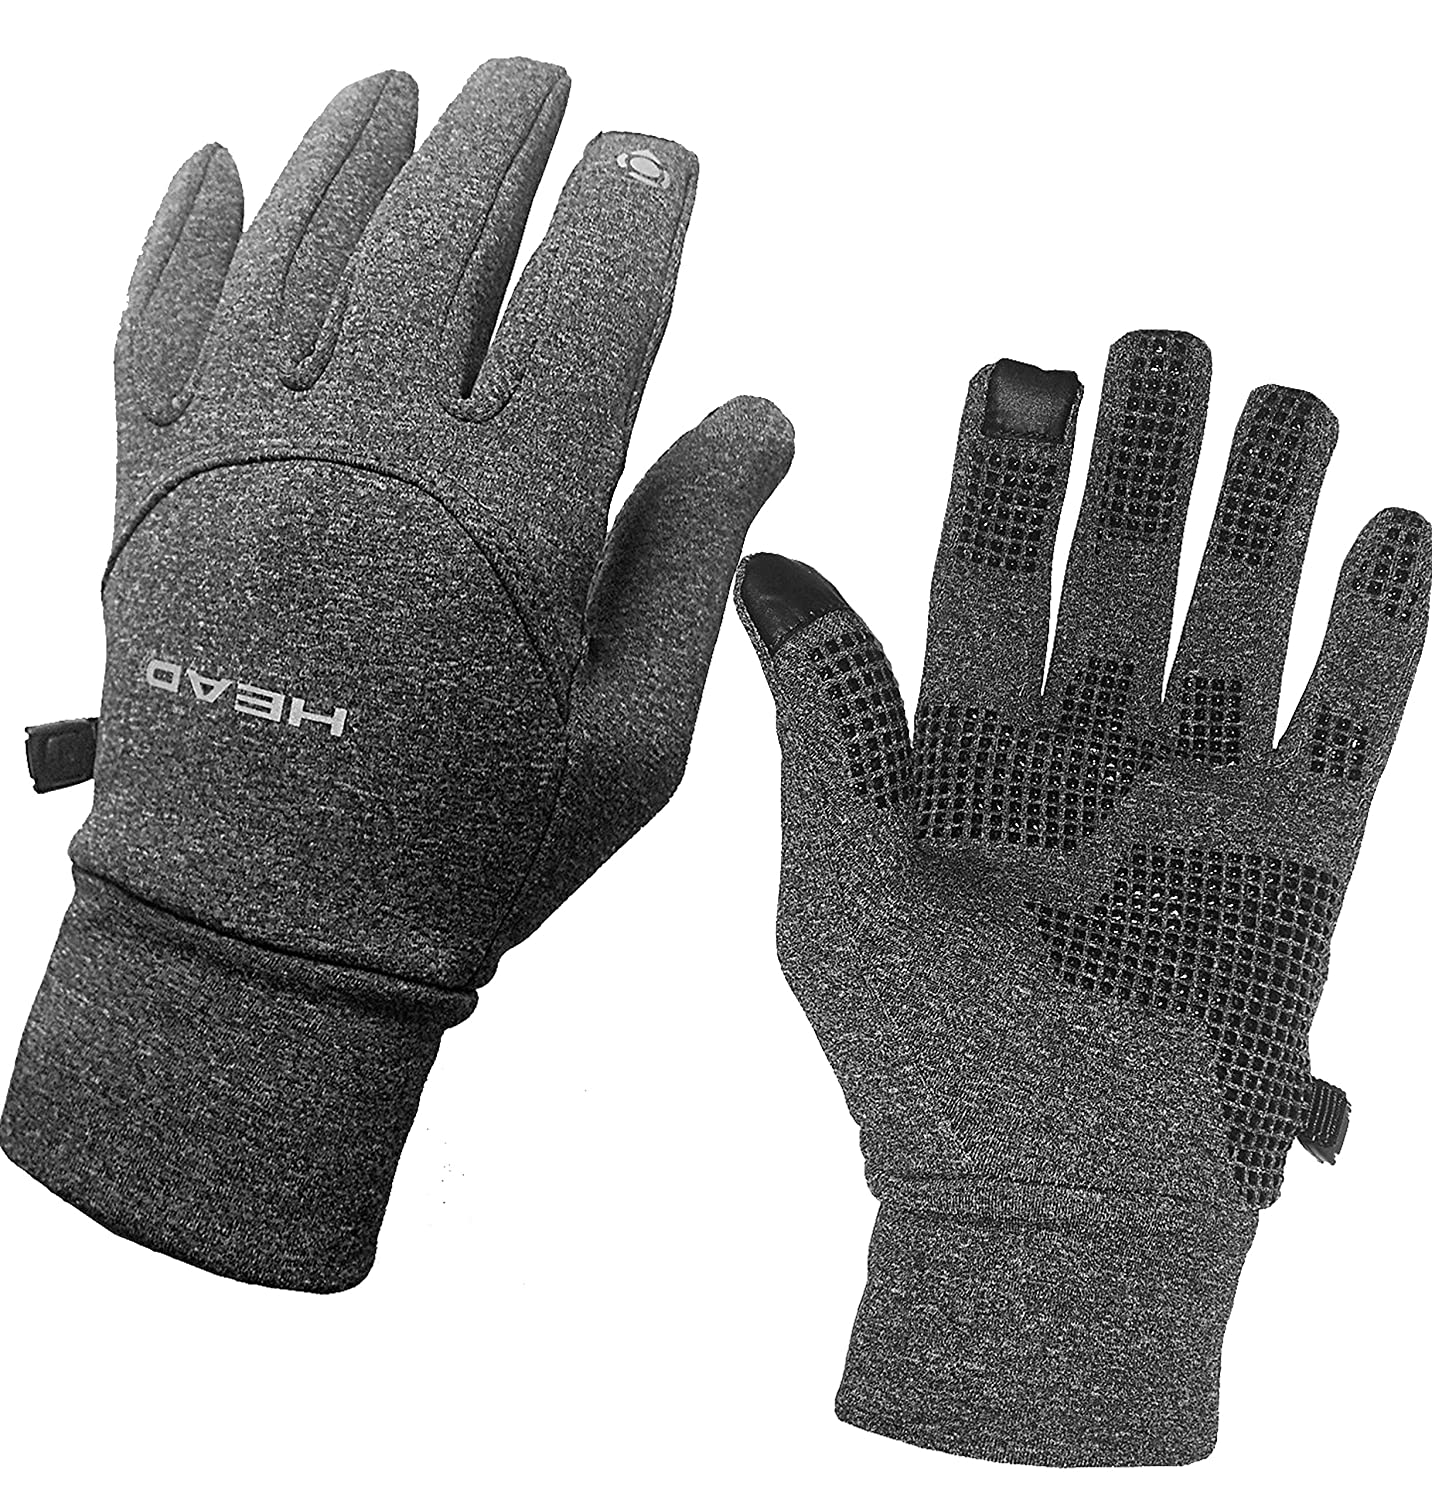 HEAD Digital Sport Running Gloves with Sensatec Touch Screen Compatible